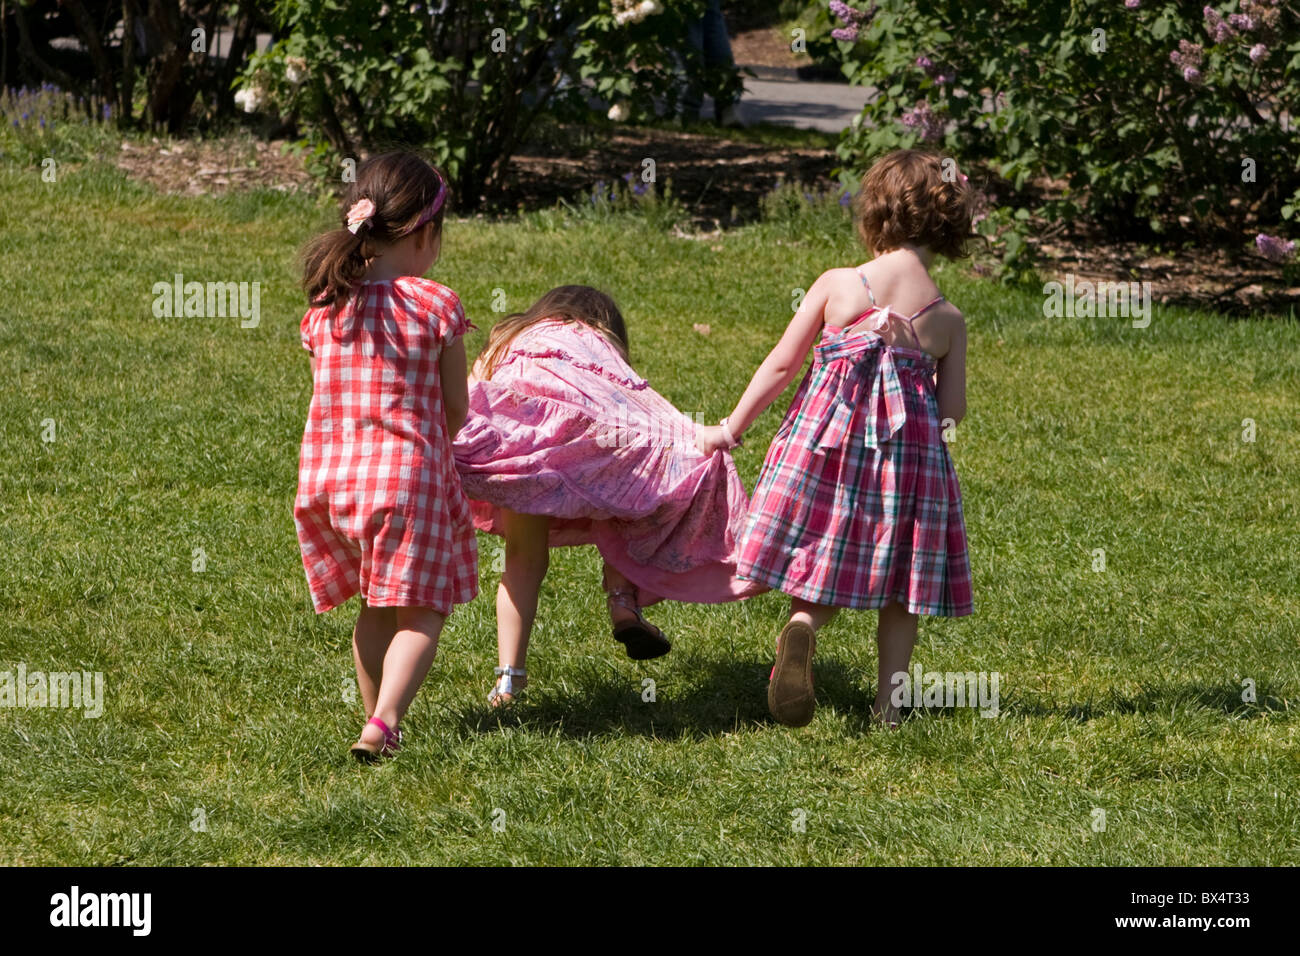 3 small girls find their own amusement at the Botanical Gardens in Brooklyn. - Stock Image